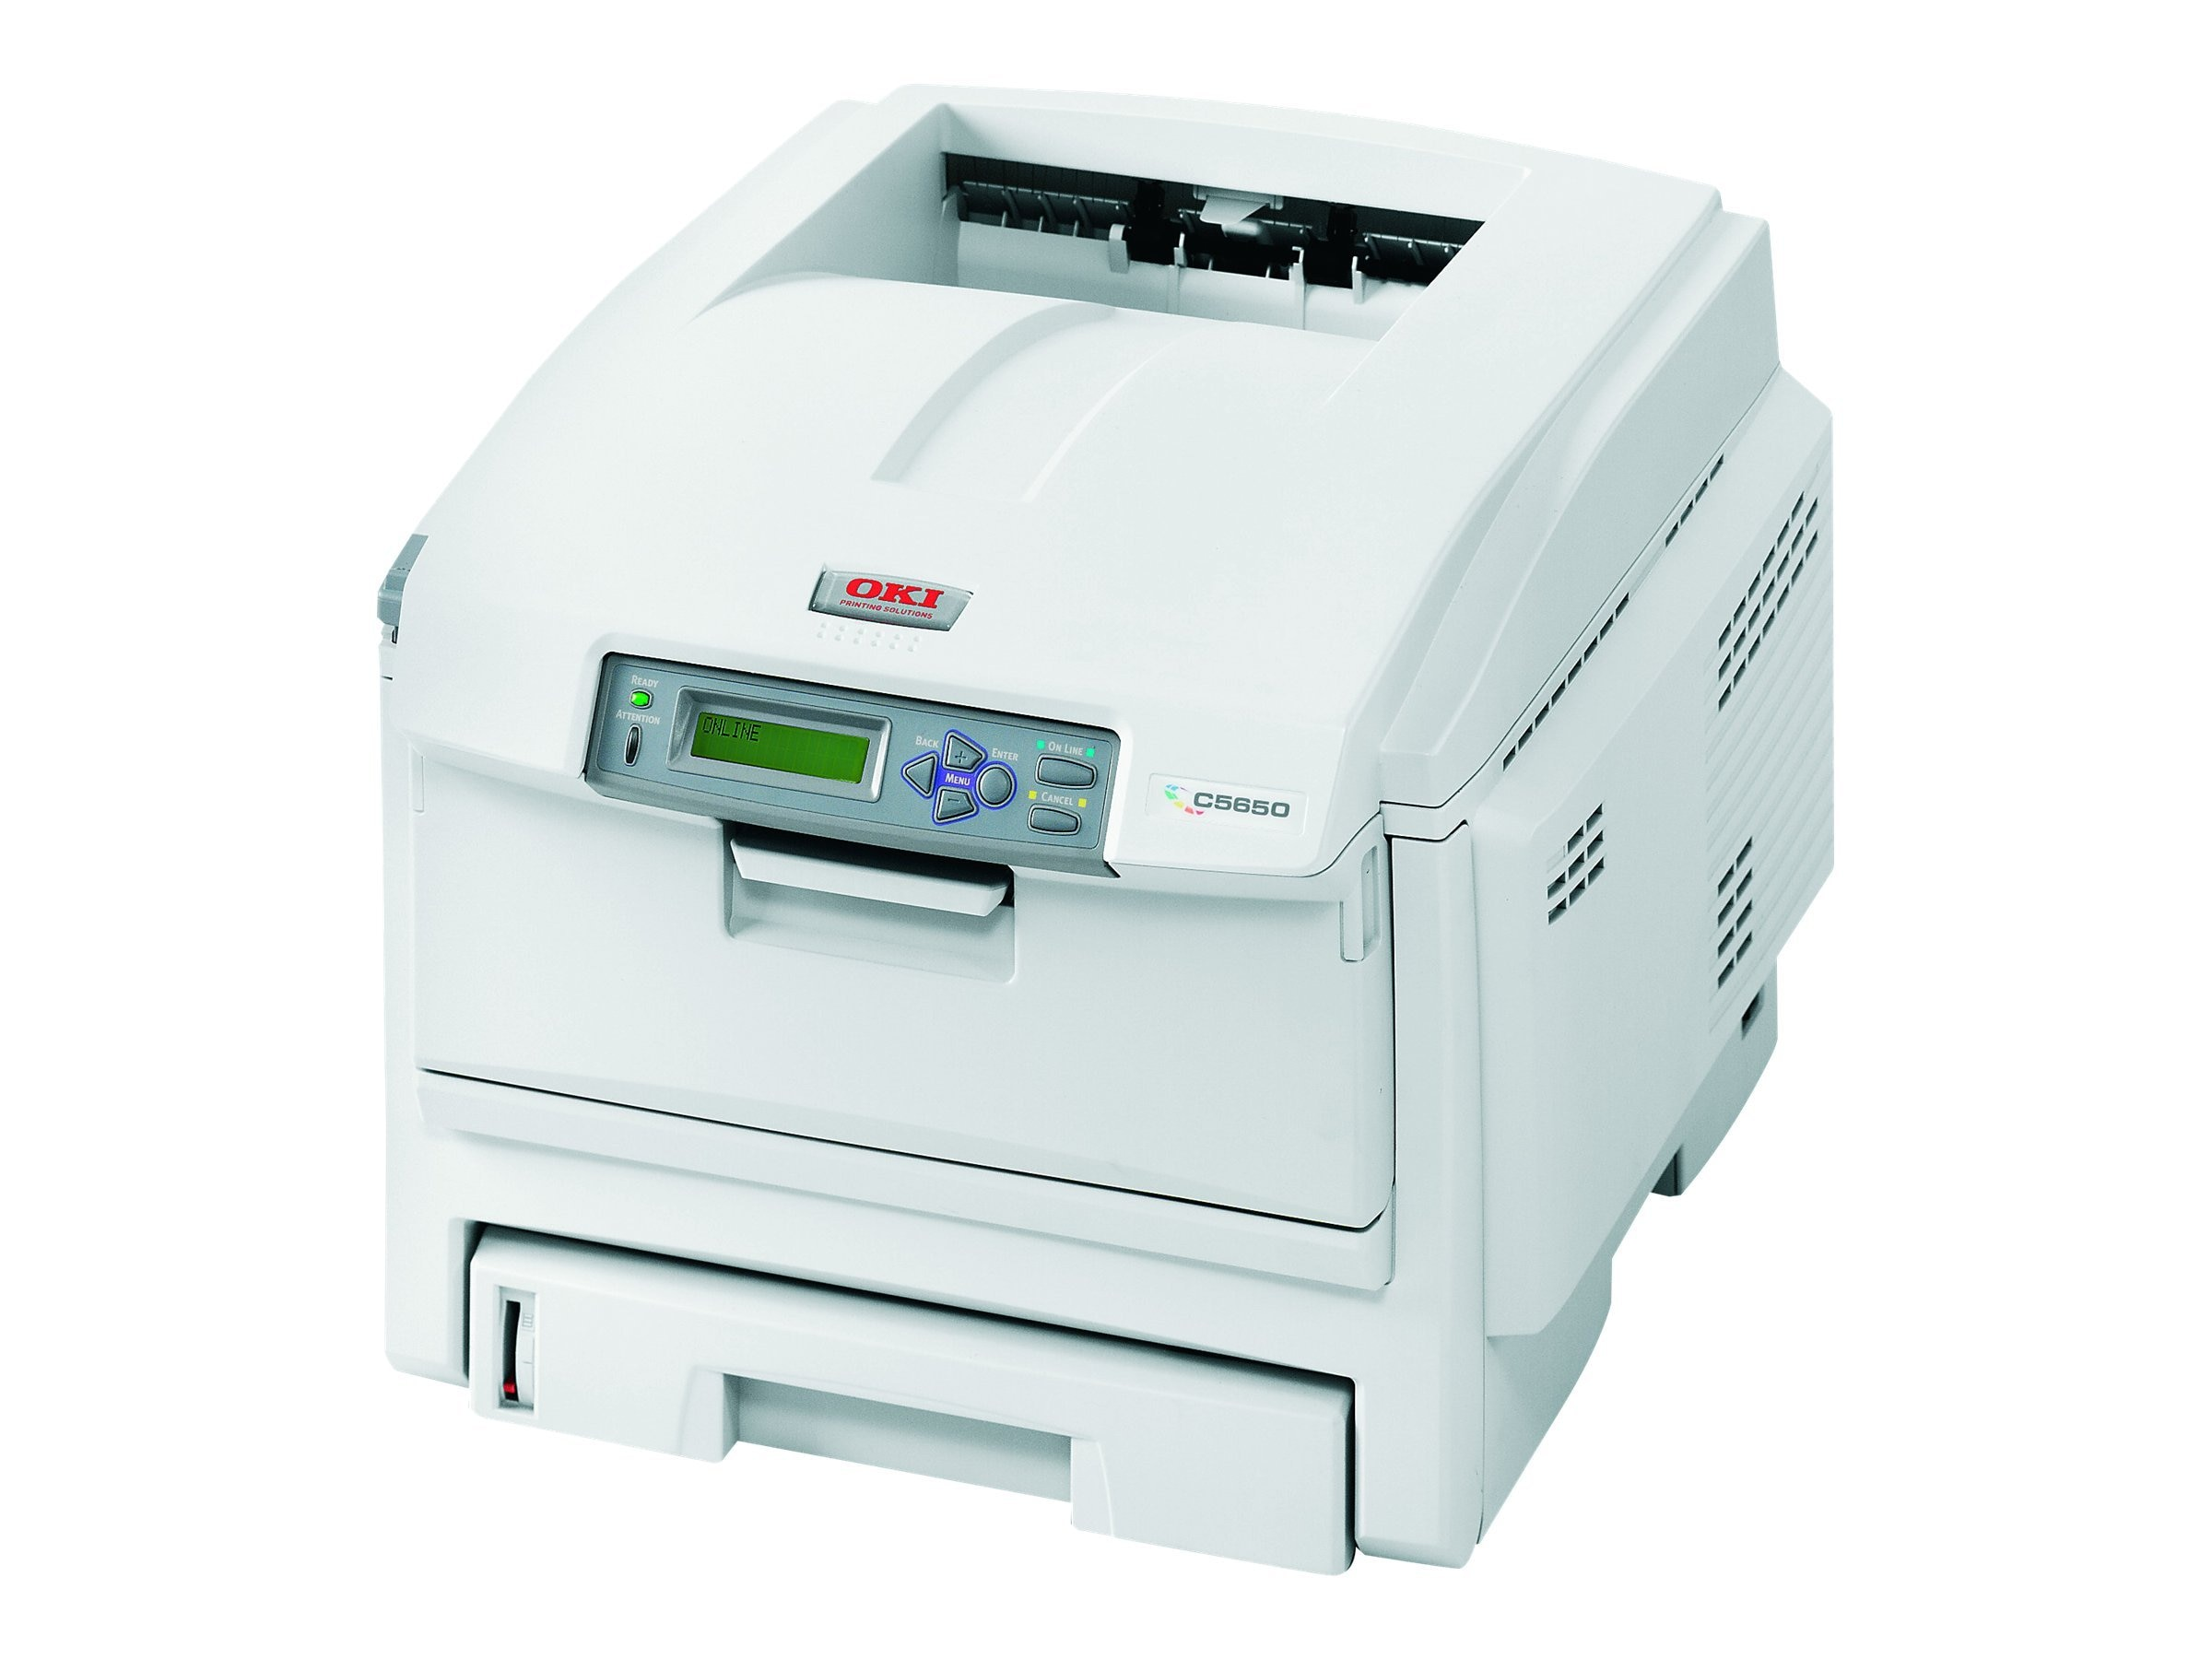 Oki C9650hn Color Laser Printer, 91642401, 12729561, Printers - Laser & LED (color)